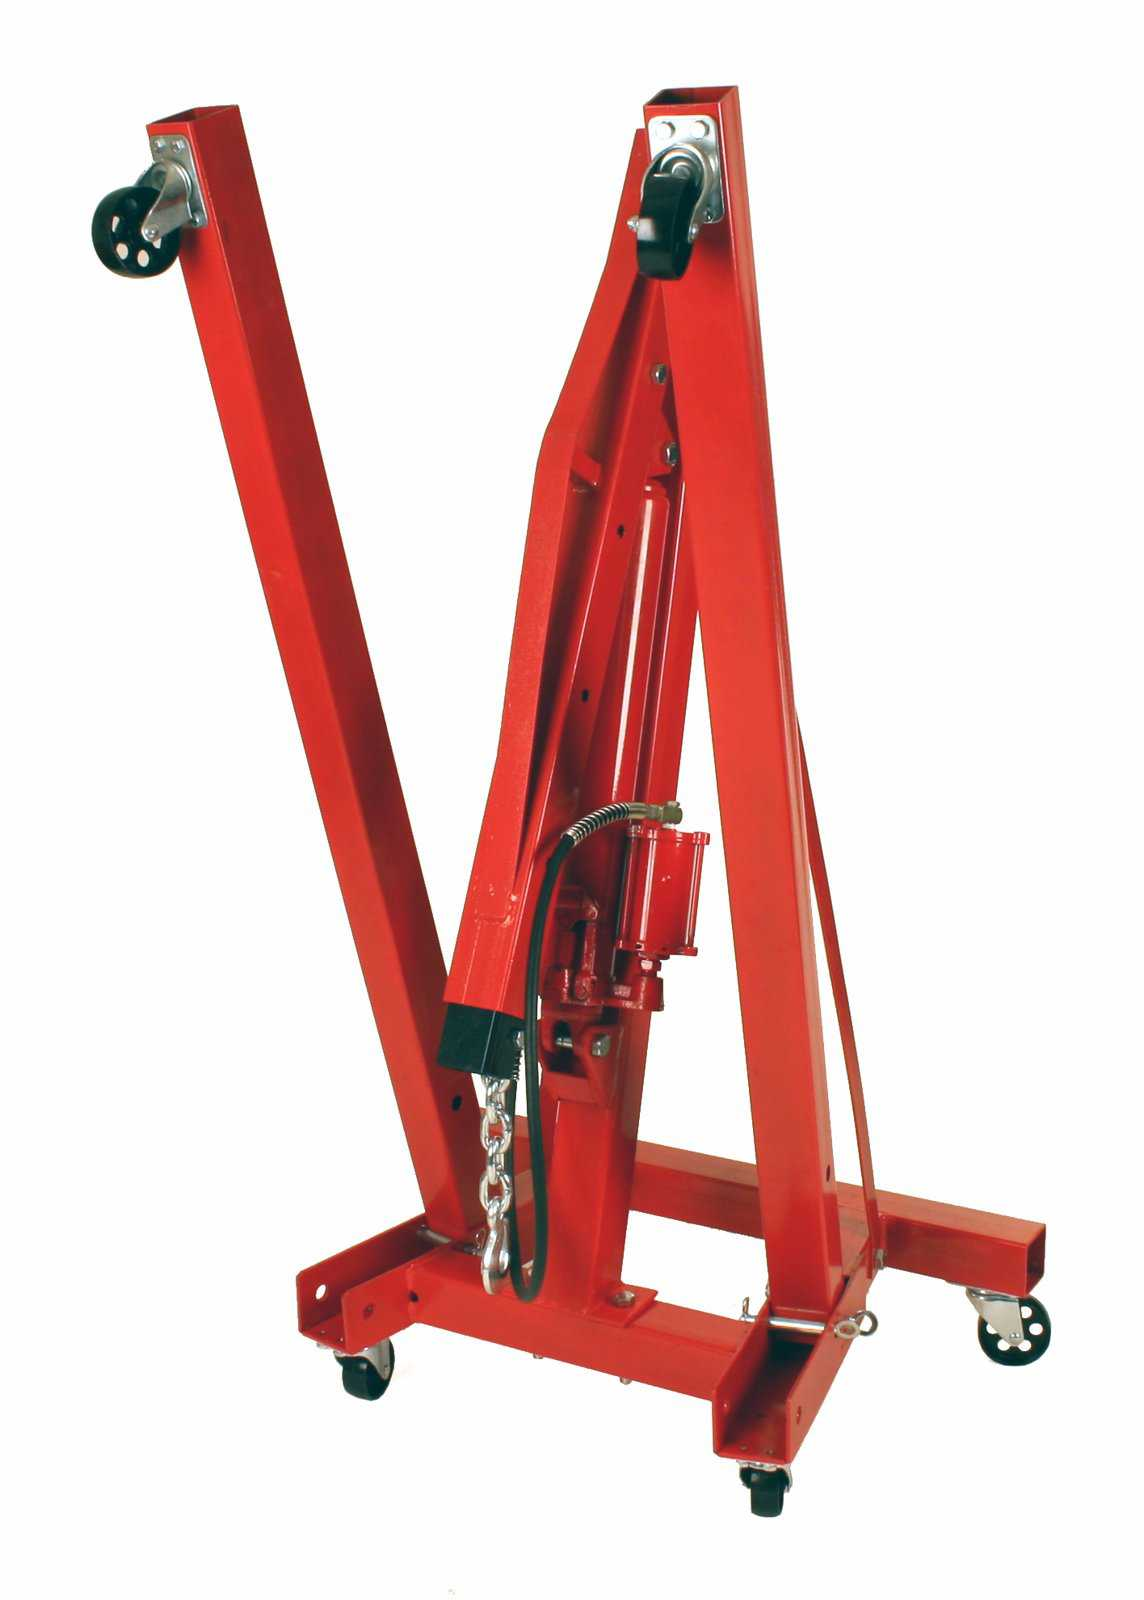 Dragway Tools 2 Ton Folding Air Hydraulic Engine Hoist Cherry Picker Shop Crane Hoist Lift